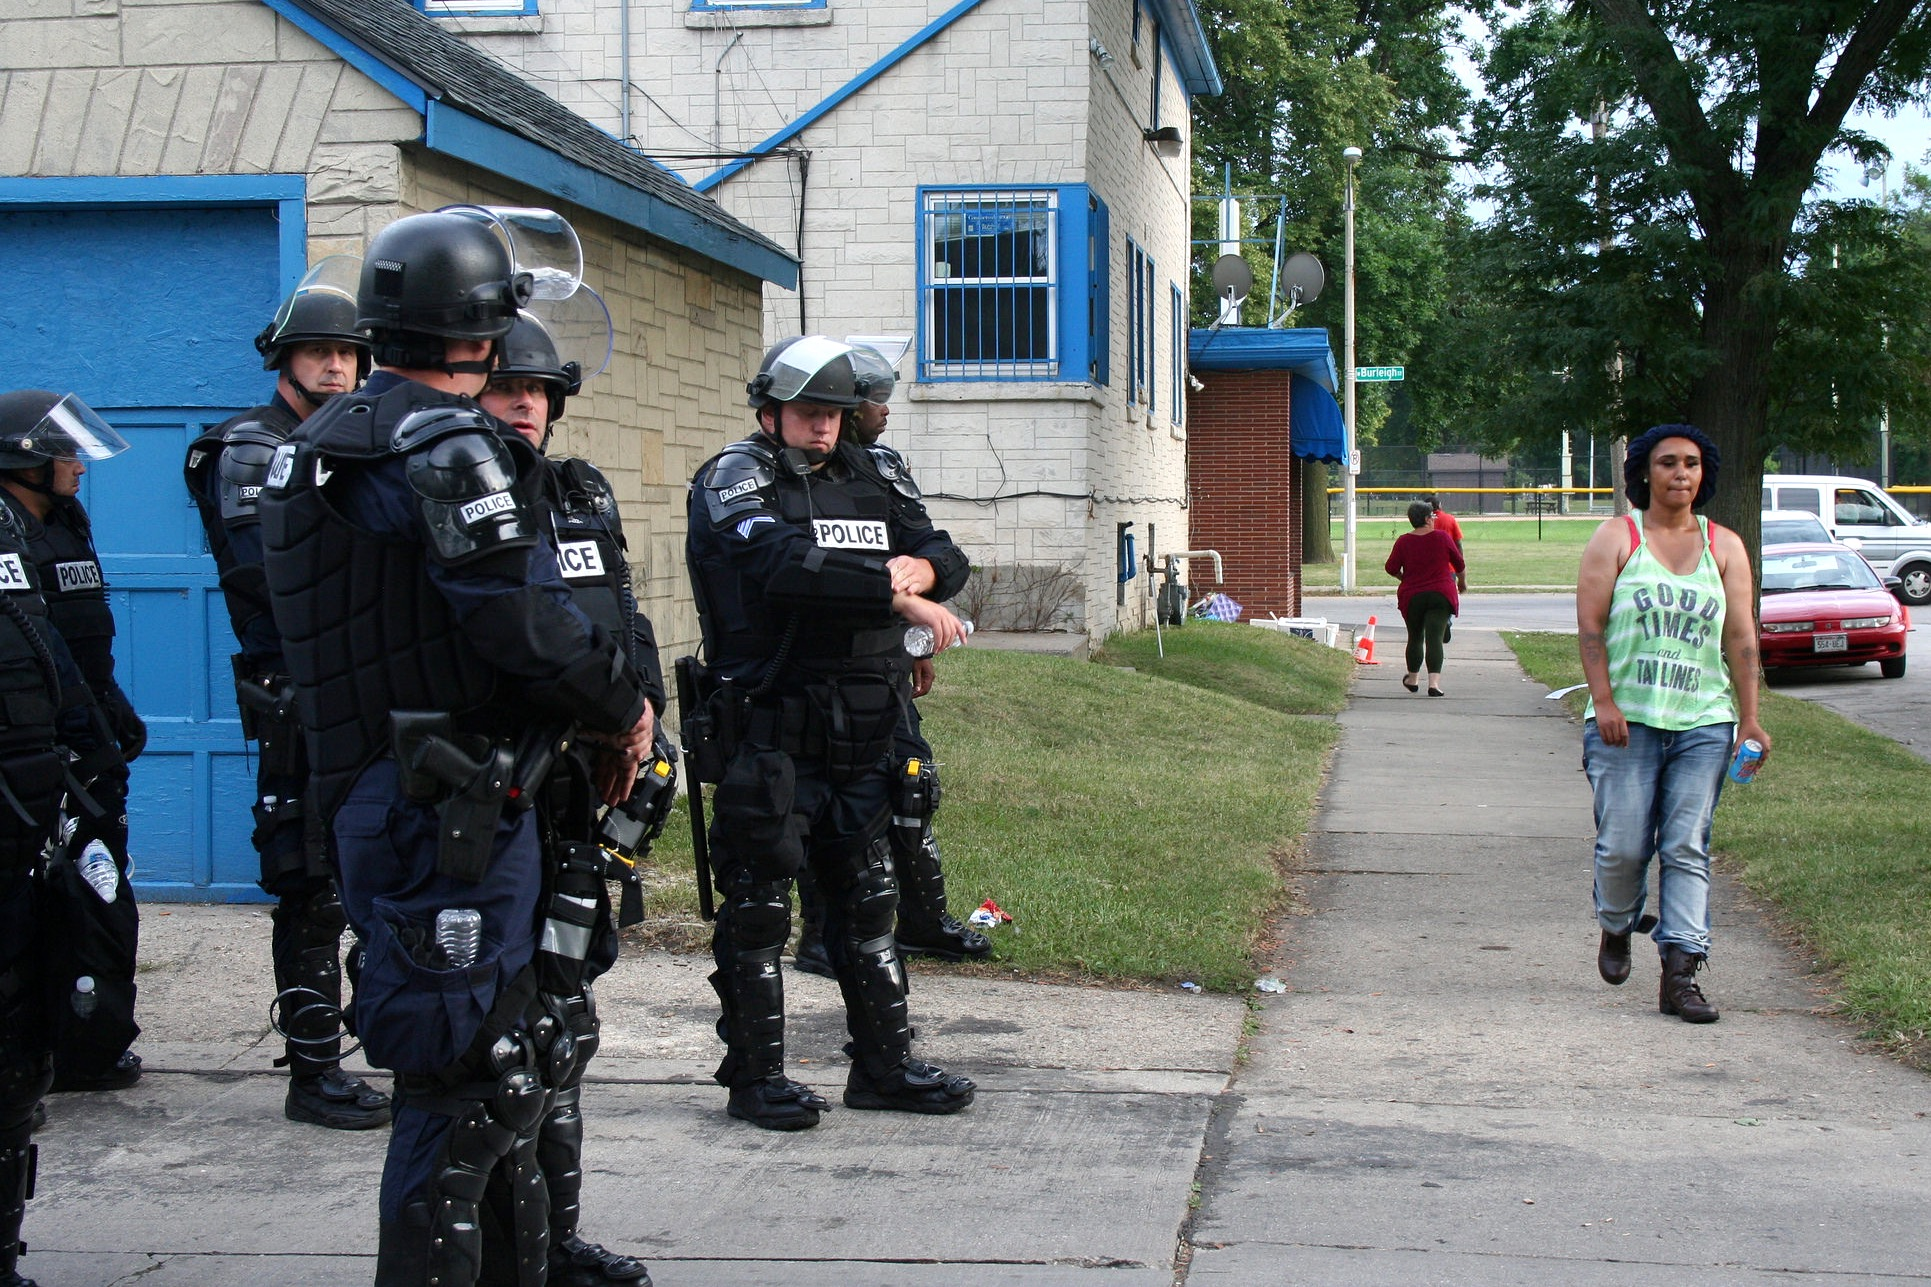 The National Guard was activated by Wisconsin Gov. Scott Walker, Milwaukee County Sheriffs closed Sherman Park and police were heavily armed and armored after two nights of violent demonstrations. (Photo by Jabril Faraj)